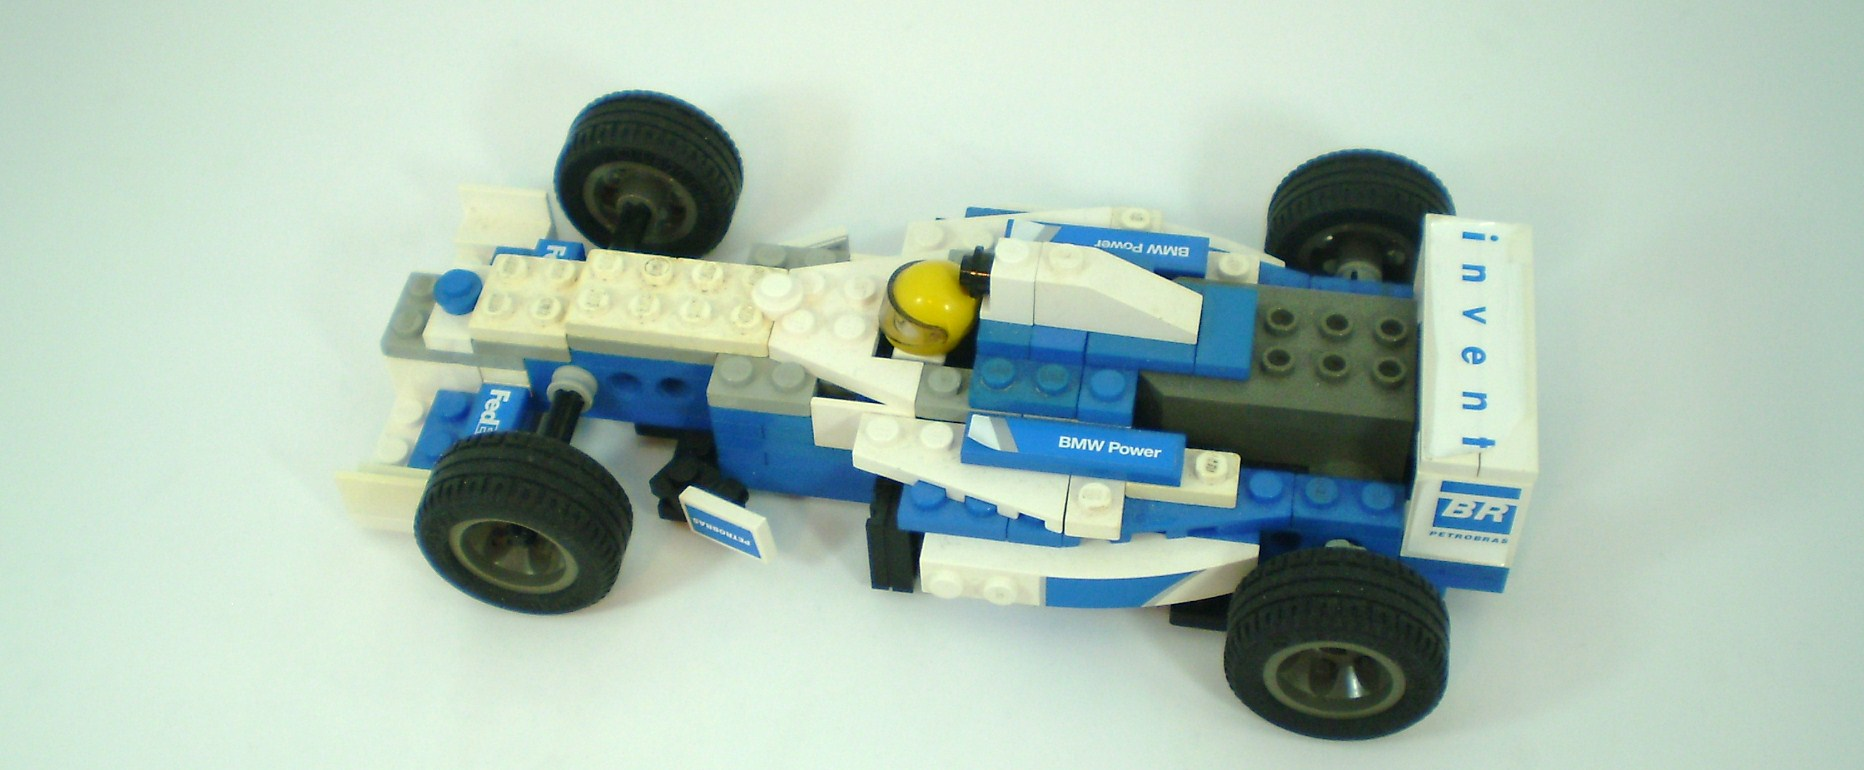 formula1_williams_bmw_05.jpg